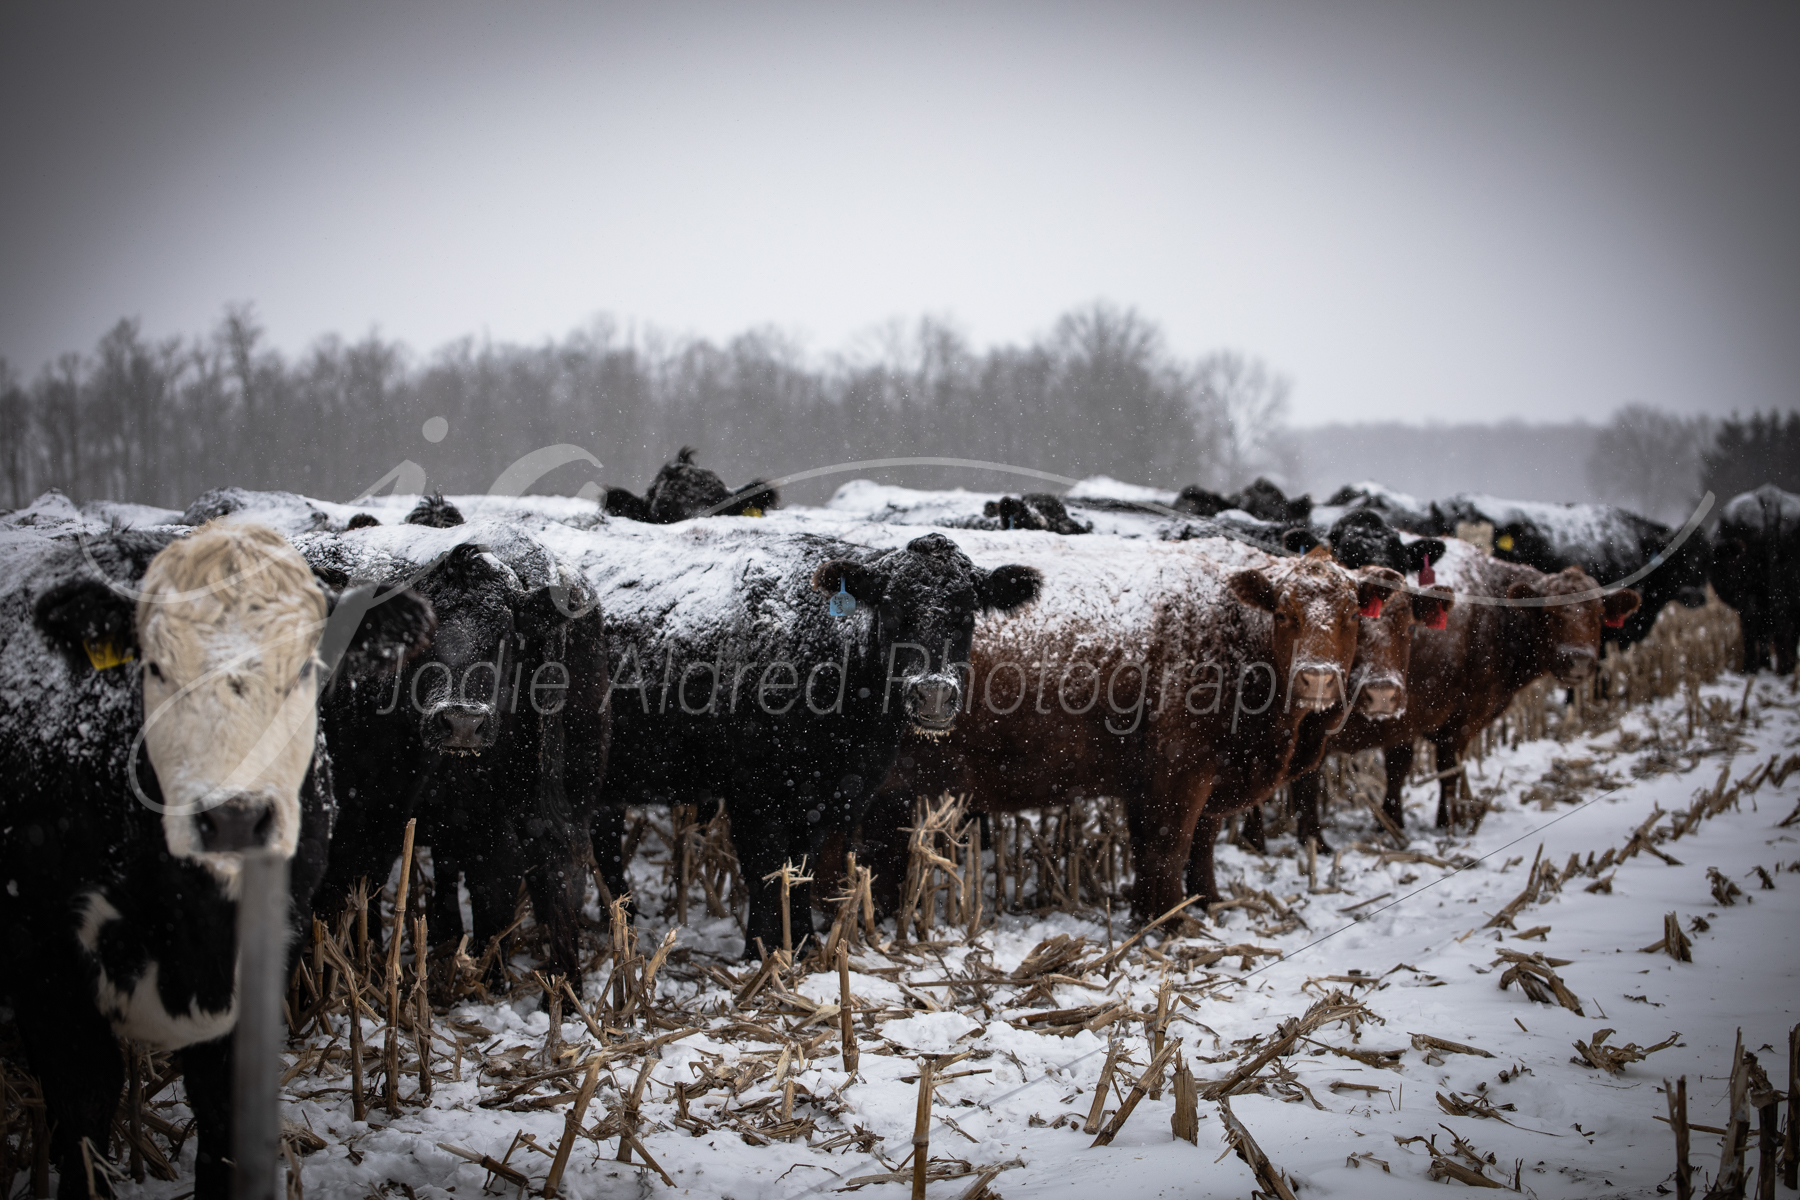 Jodie-Aldred-Photography-Ontario-Agriculture-Photographer-Farm-Outdoors-Nature-Middlesex-Elgin-Chathma-Kent-Huron-Photographer-cattle-winter-snow-herd.jpg